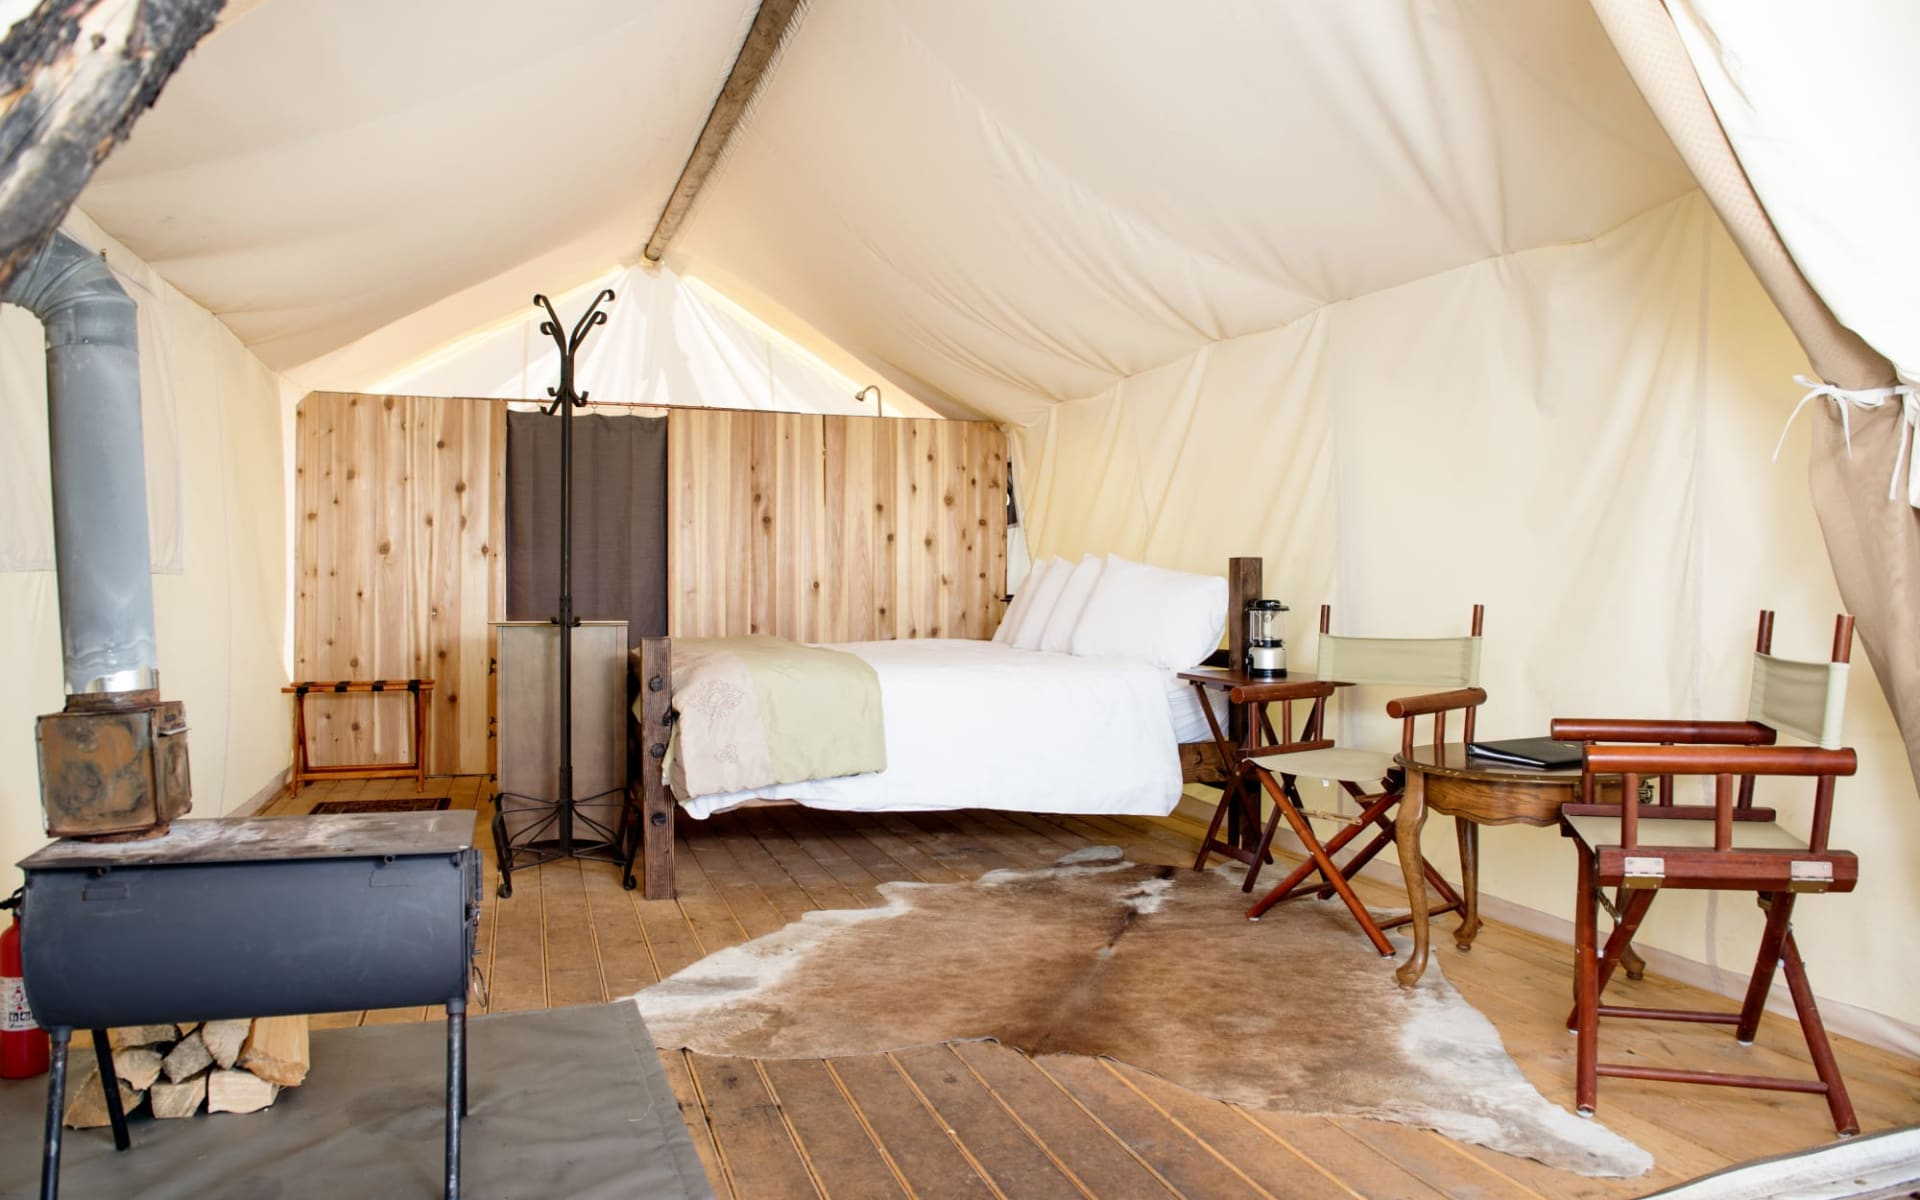 Under Canvas Yellowstone in West Yellowstone: Under Canvas Yellowstone - Deluxe Tent